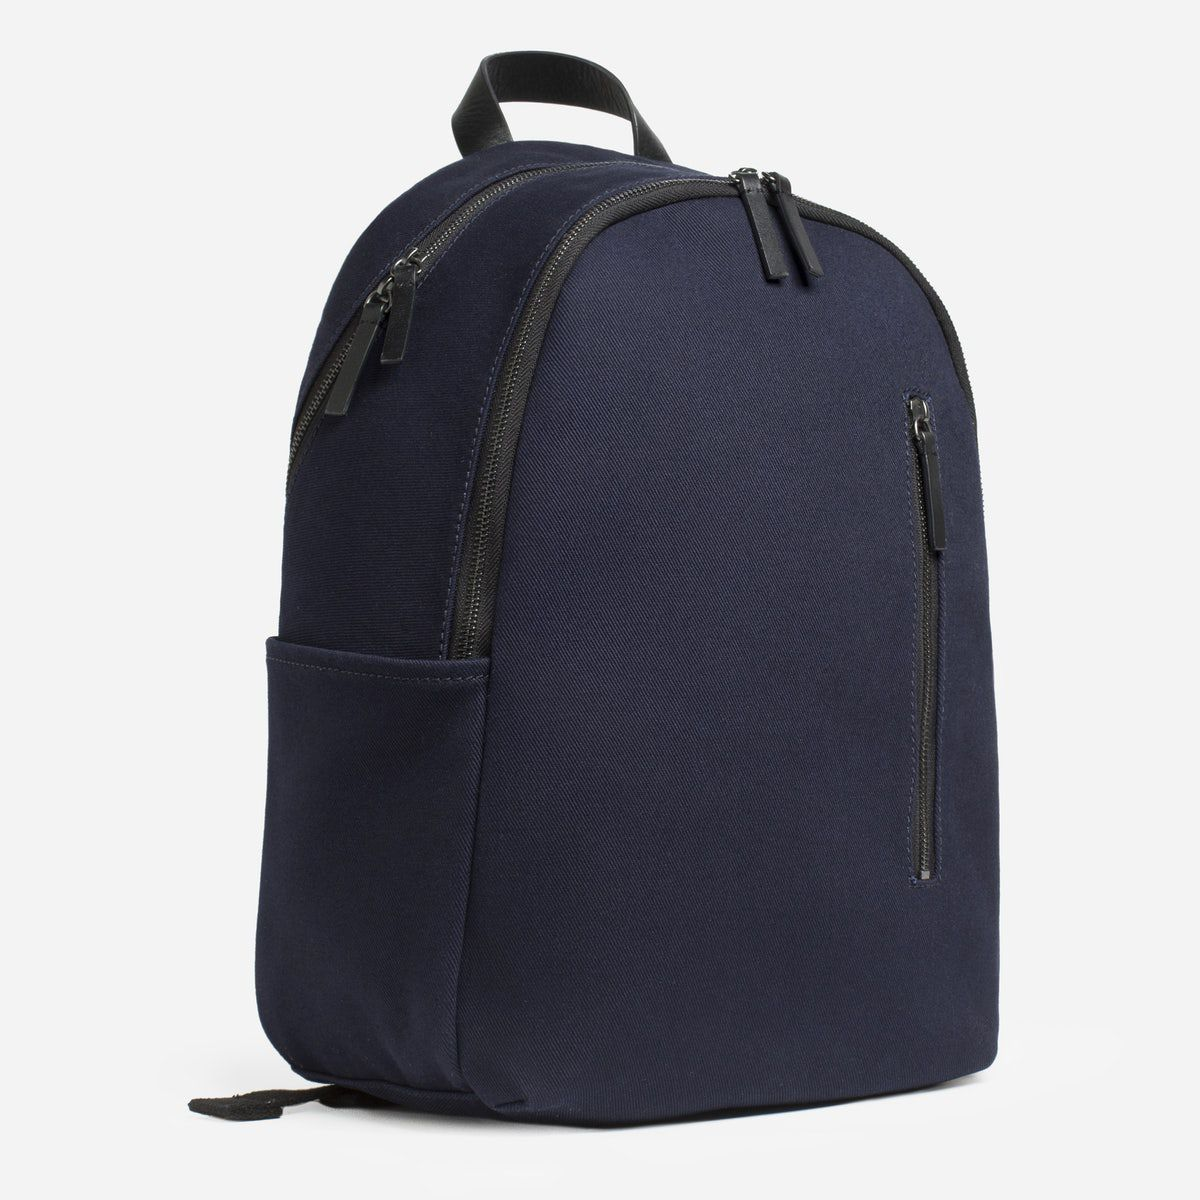 A navy and black backpack